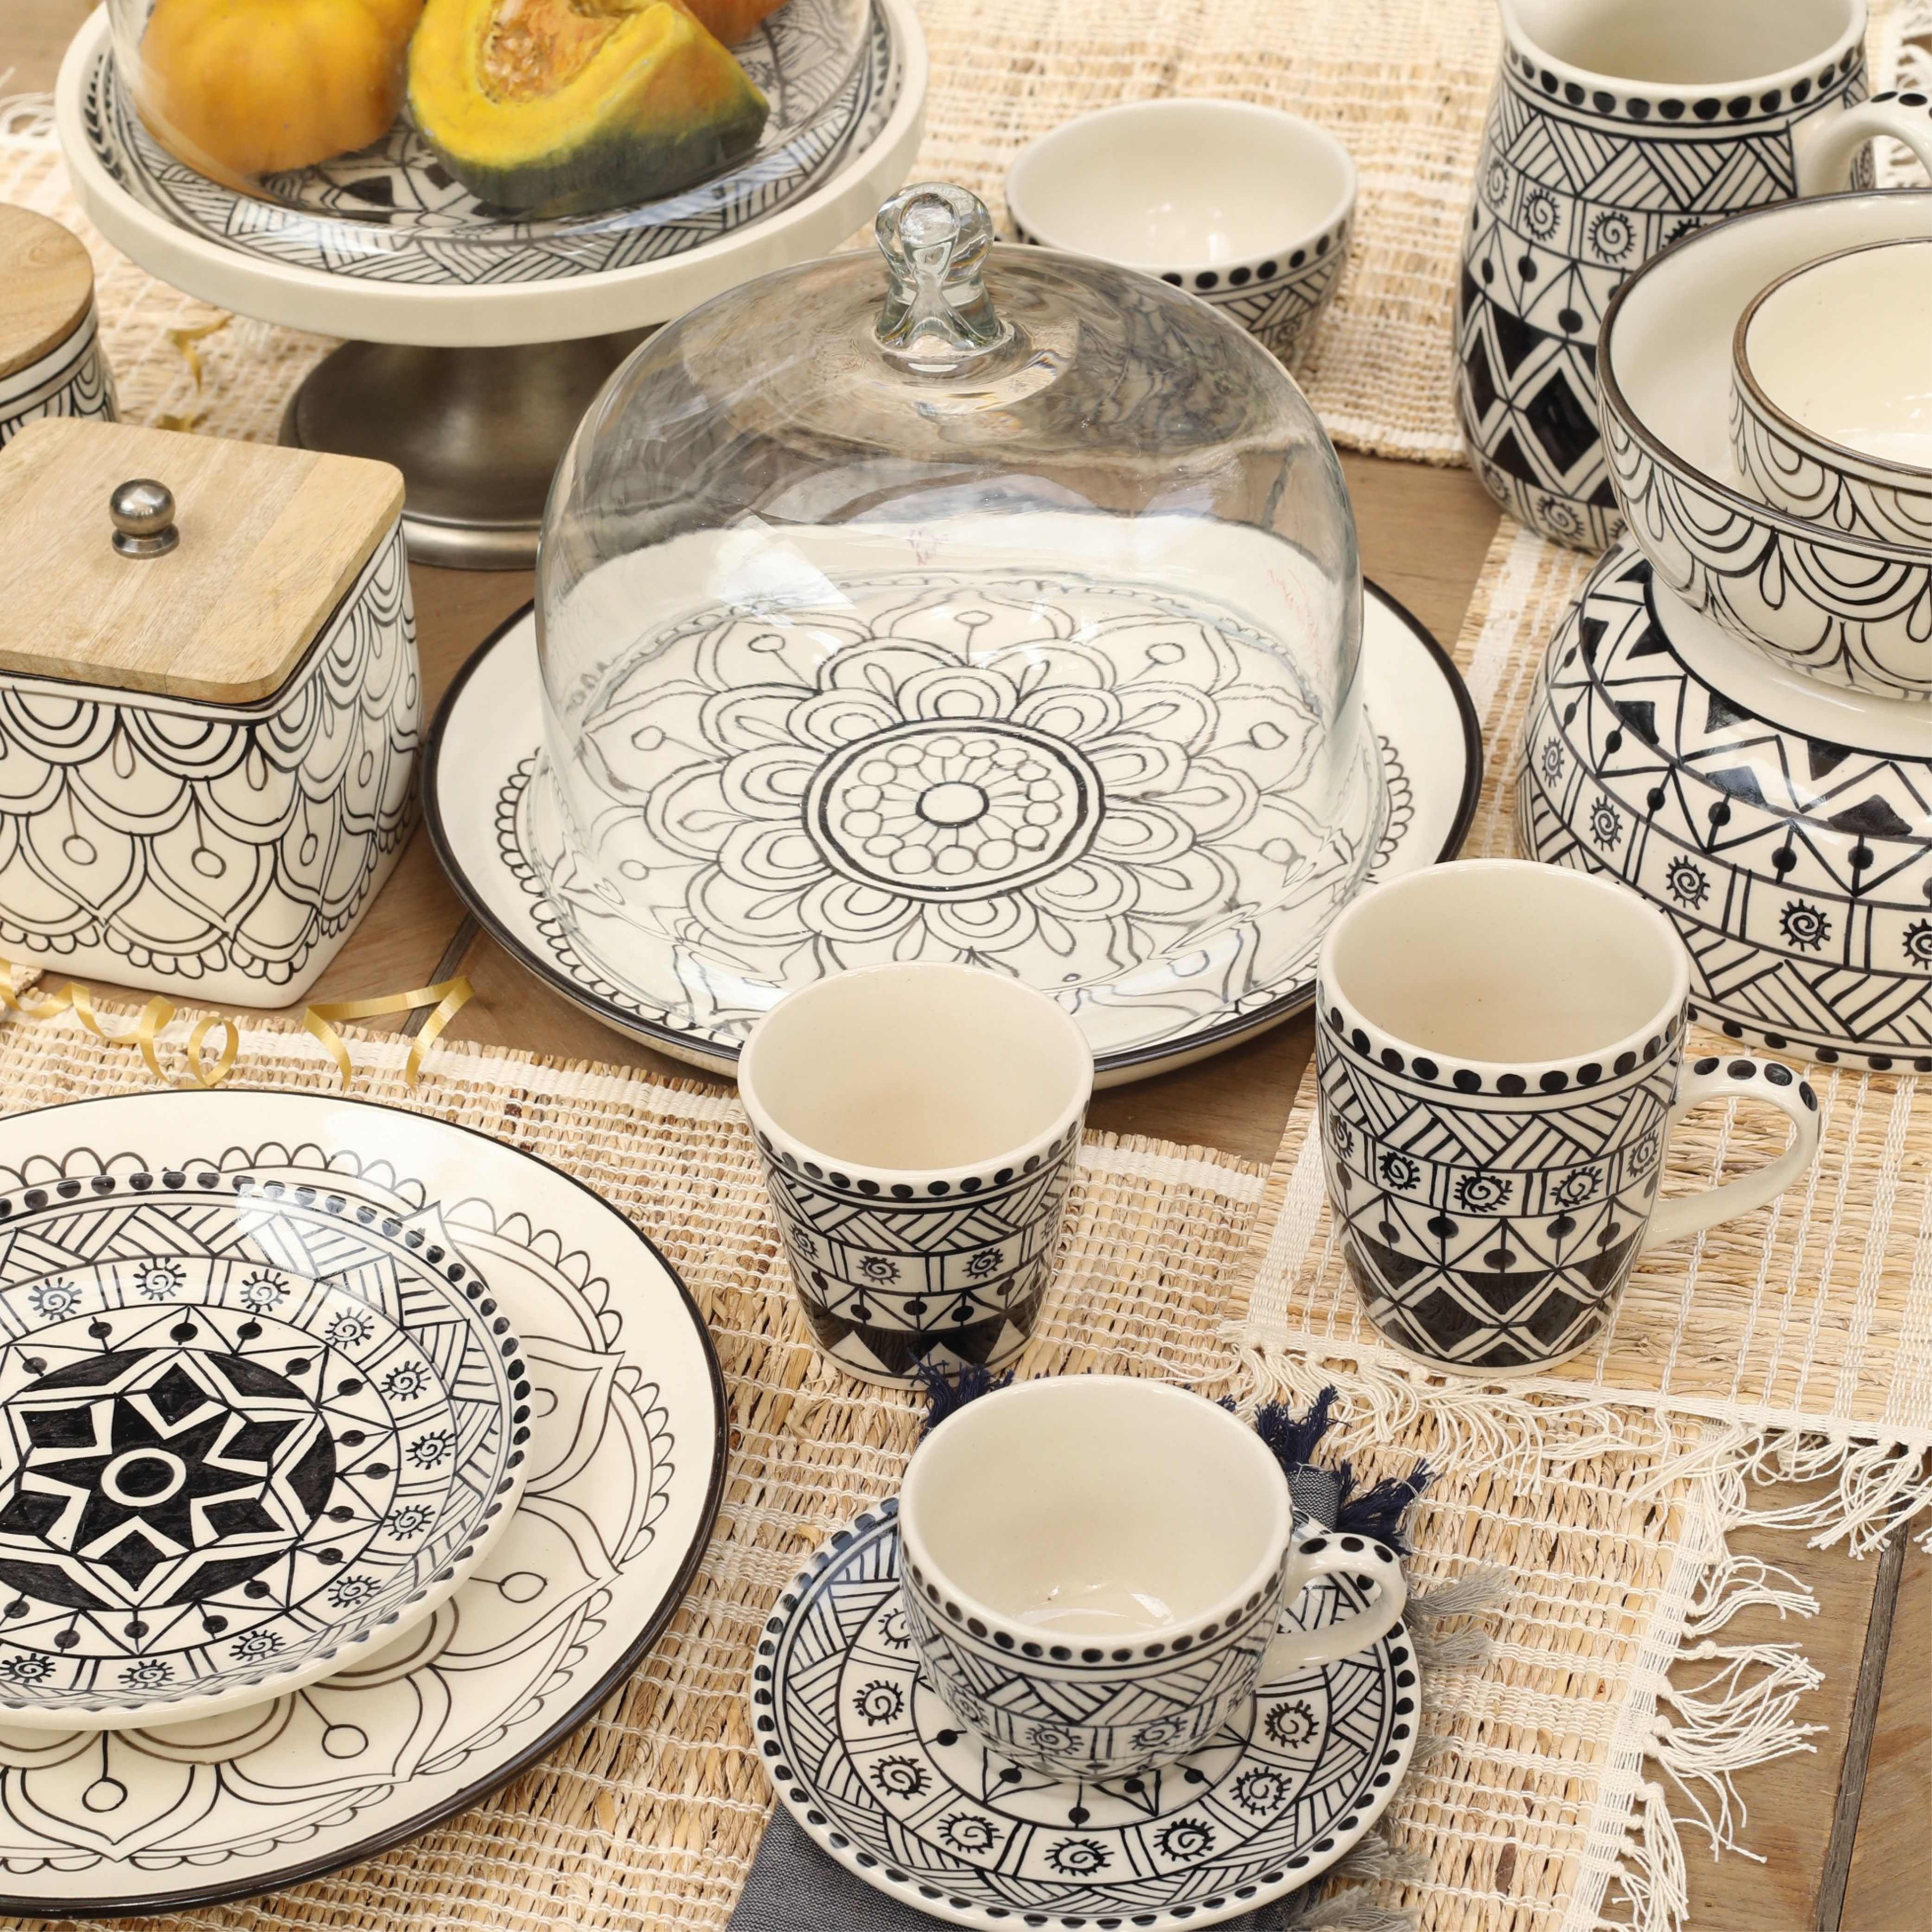 Pottery Ceramics Tableware Tabledecor Ceramic Tablesetting Tabletop Clay Tablescape Dinnerware Homew New Years Decorations Tableware Heritage Crafts